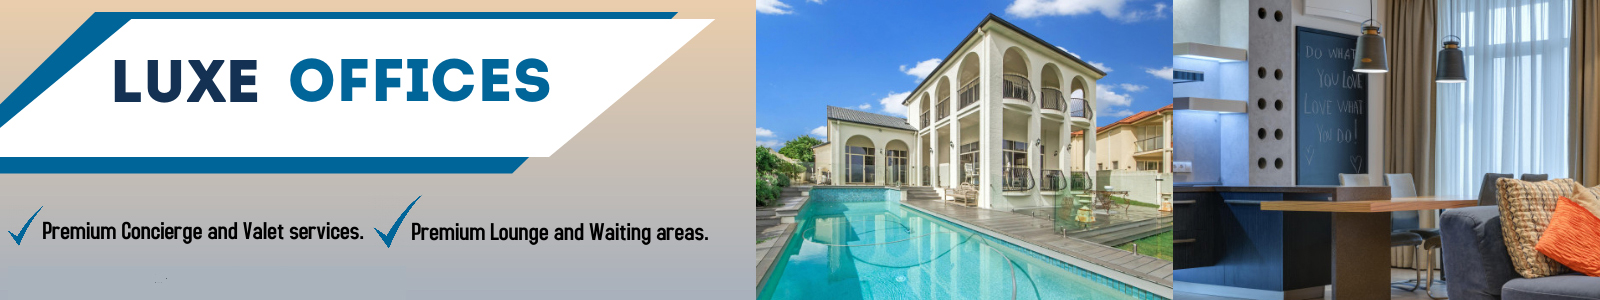 luxe-property-banner